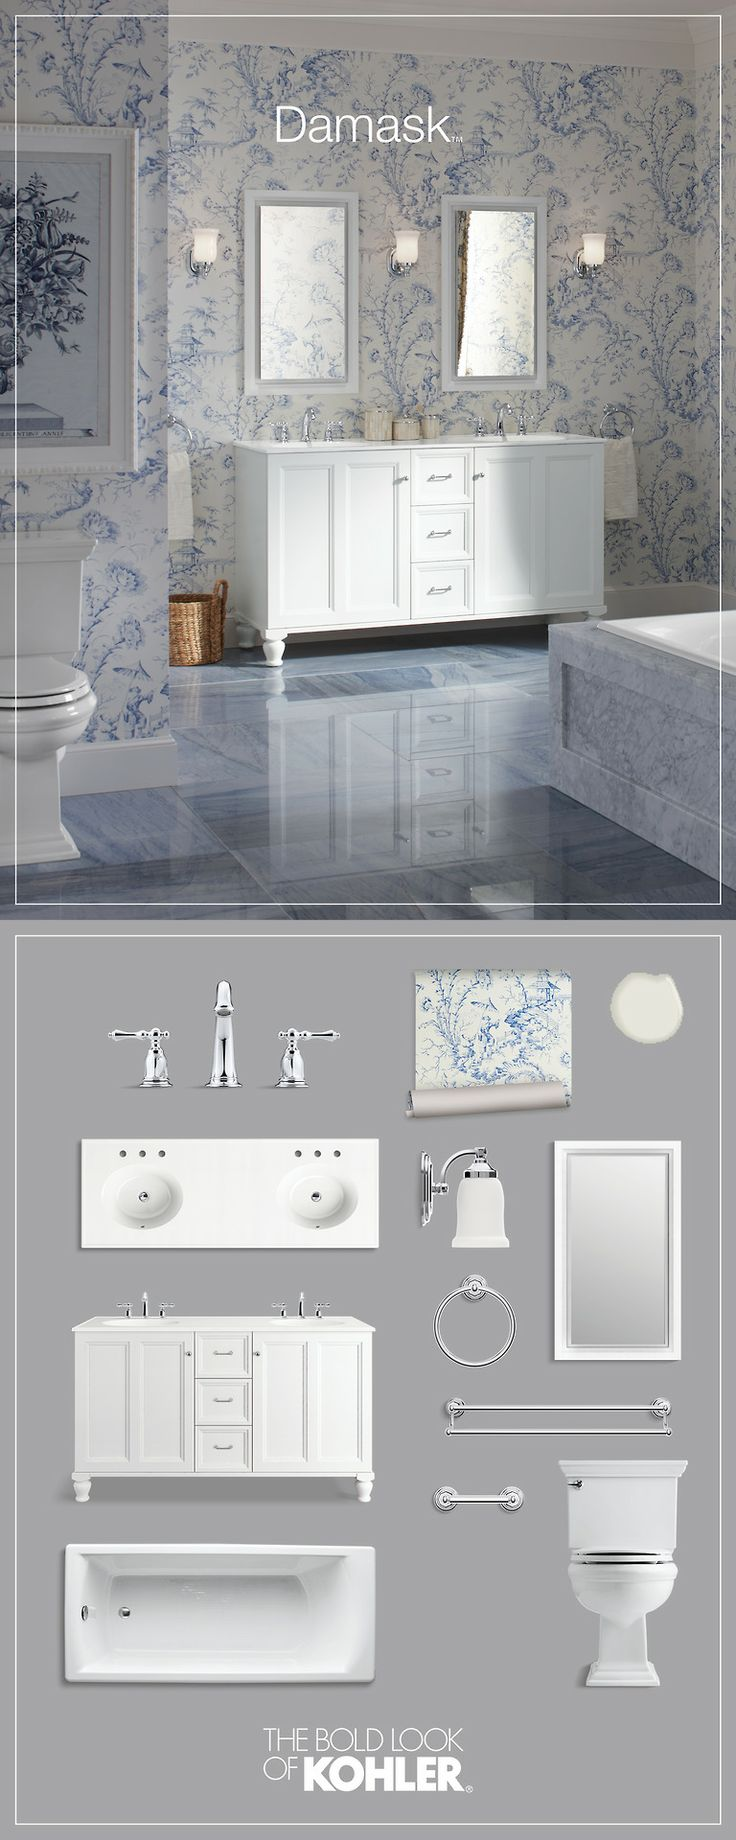 Kohler Collections : 17 Best images about KOHLER Vanity Collections on Pinterest ...